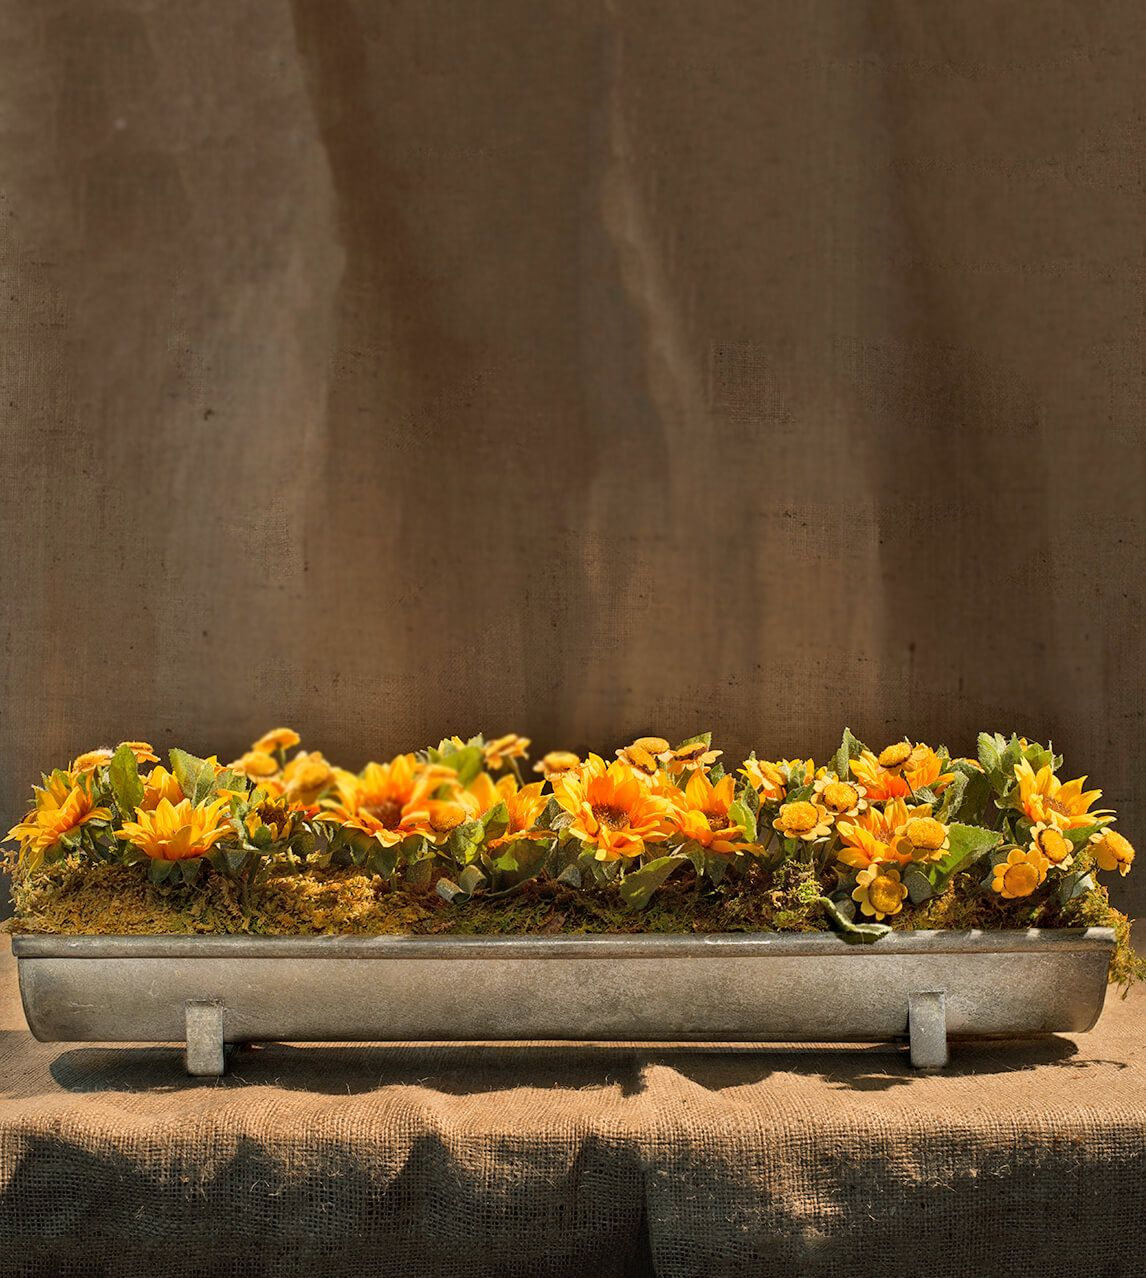 Wedding tray decoration ideas  Long metal tray for a uniquecenterpiece at a rustic wedding or